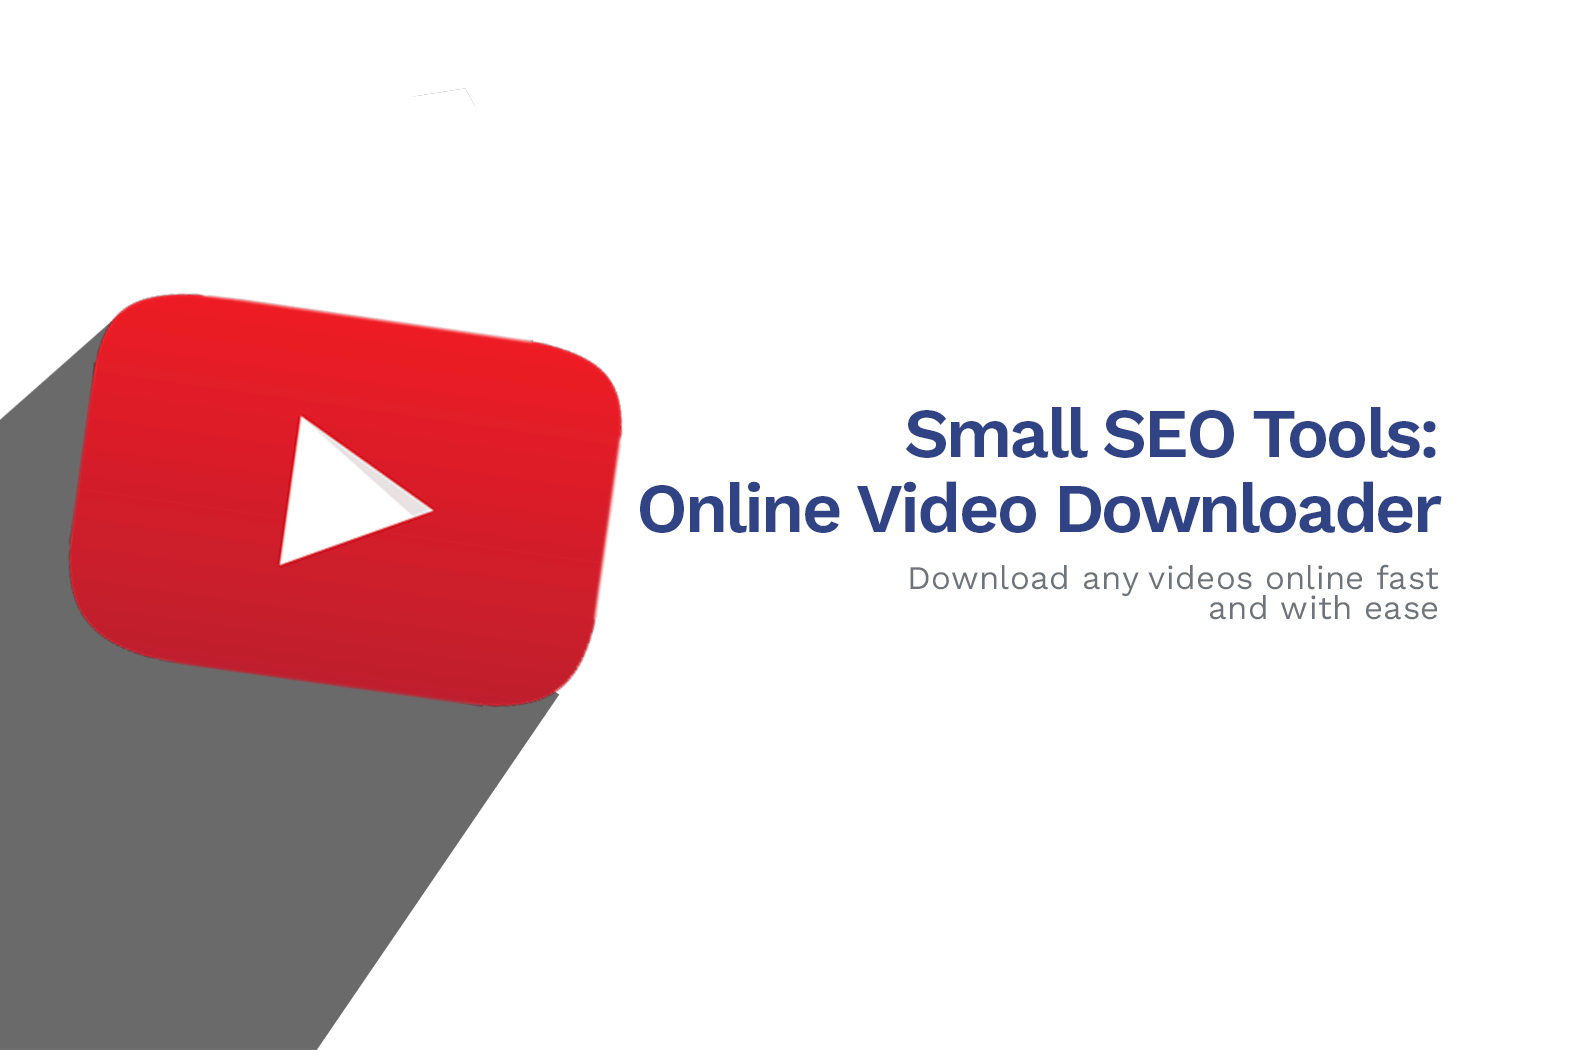 Small SEO Tools: Free Online Video Downloader